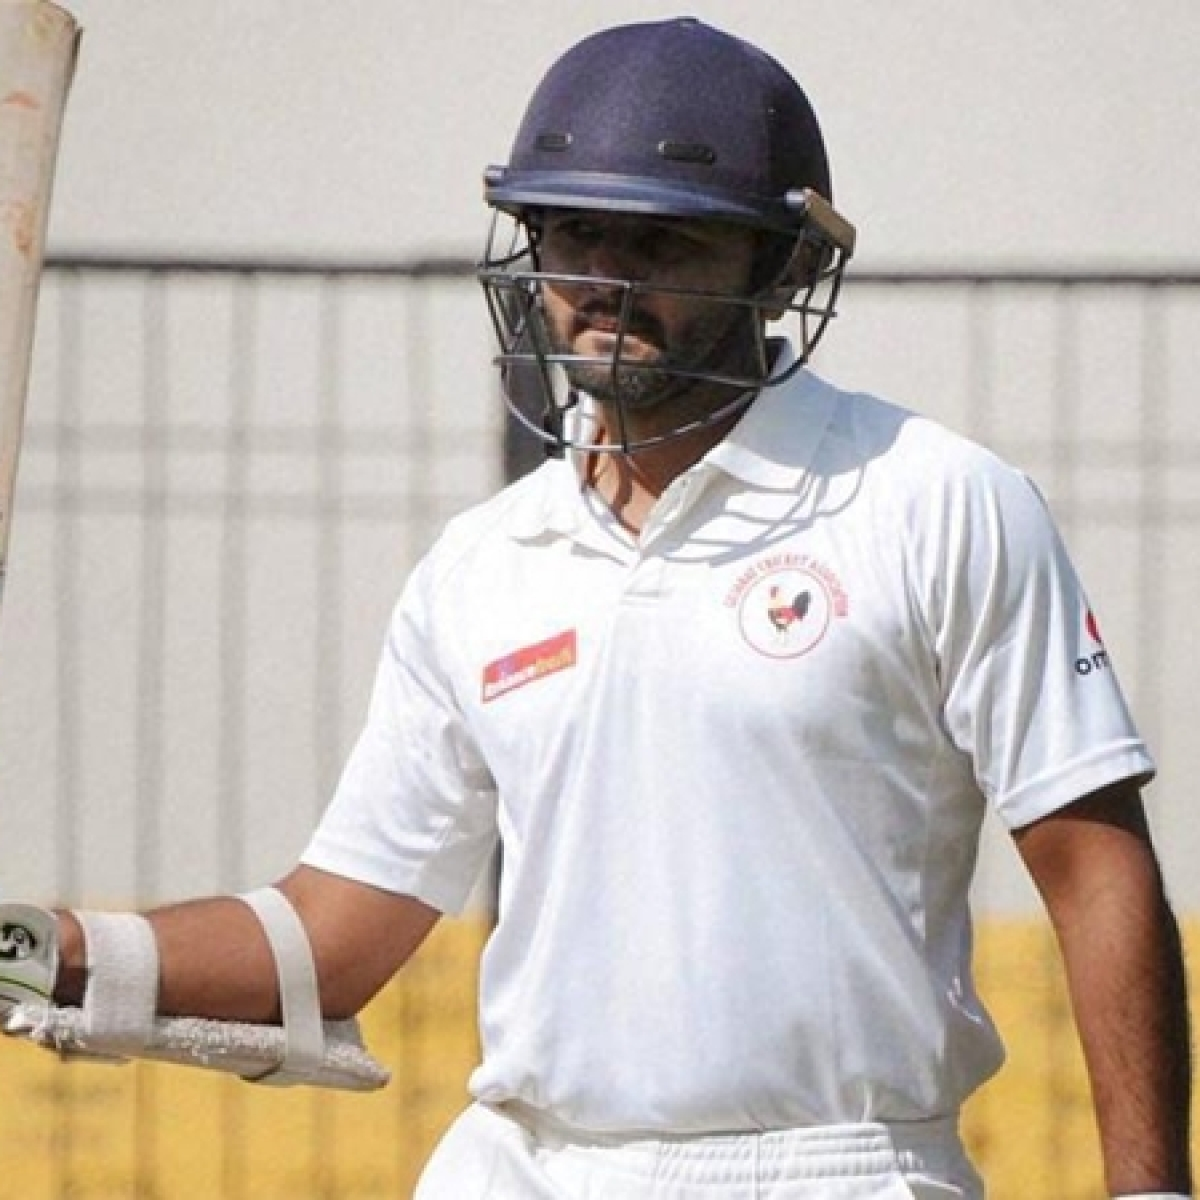 Parthiv Patel retires from international cricket, netizens wish him 'Happy Retirement'